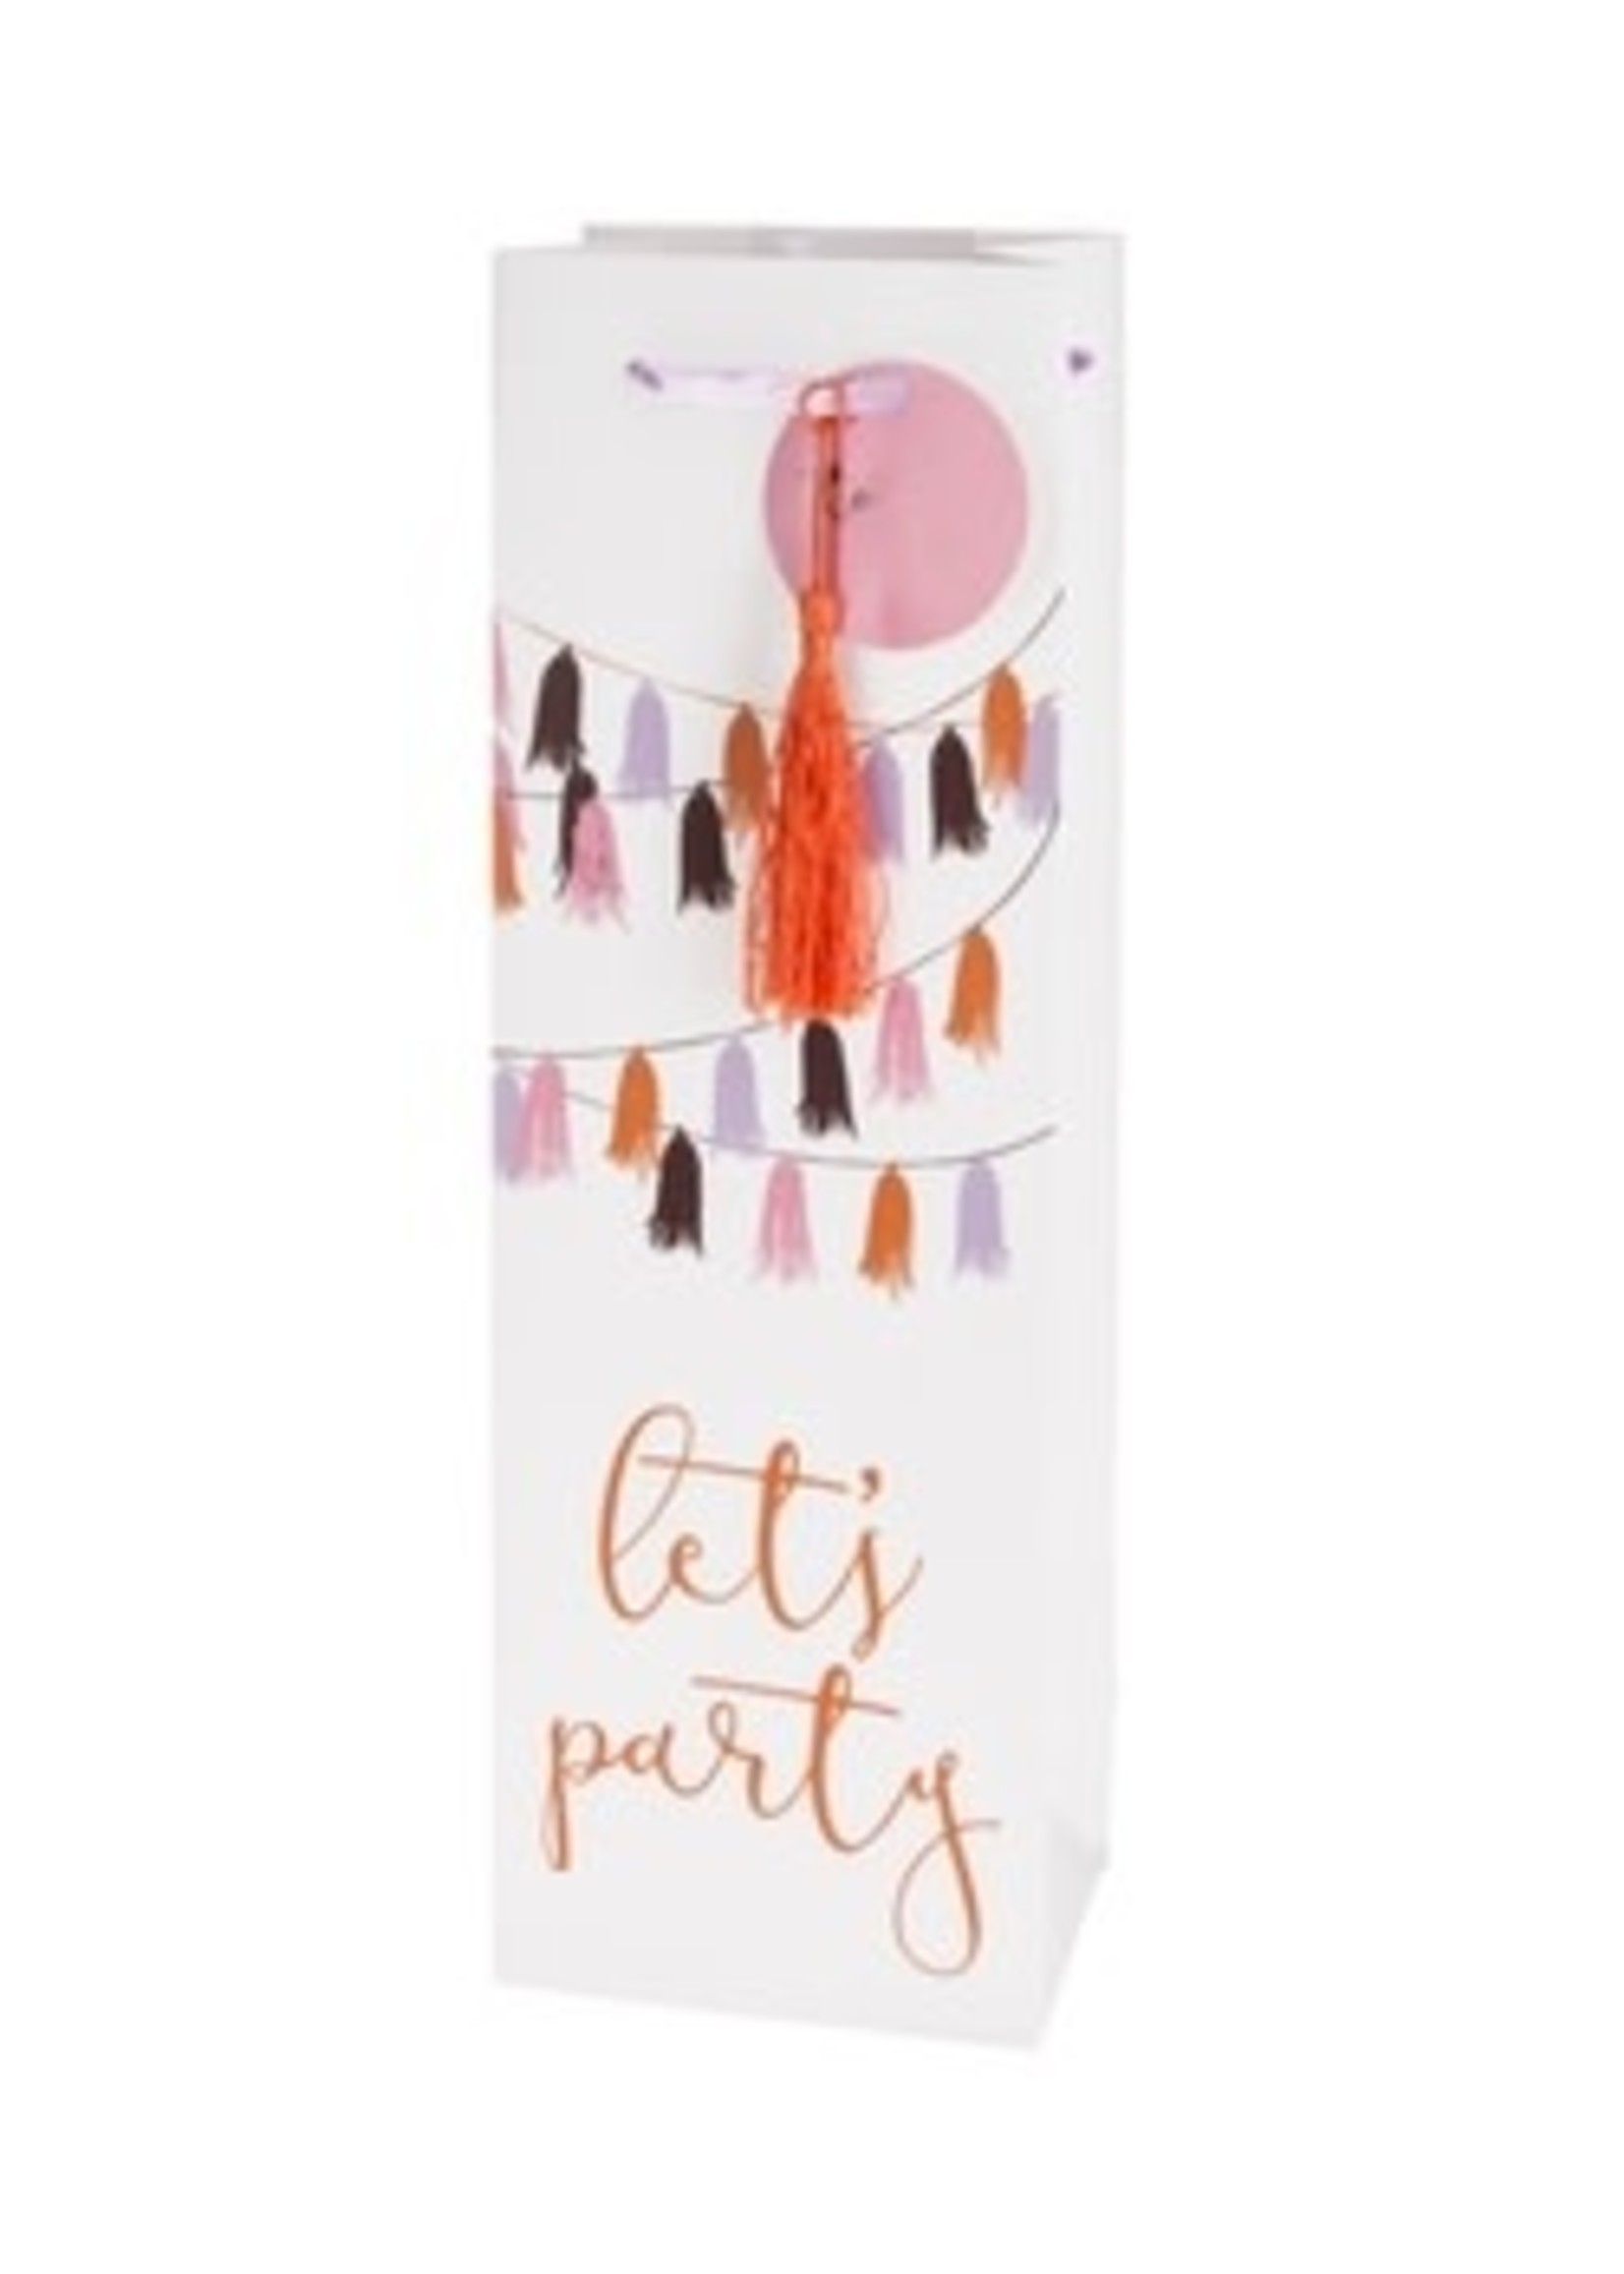 Let's Party Wine Gift Bag